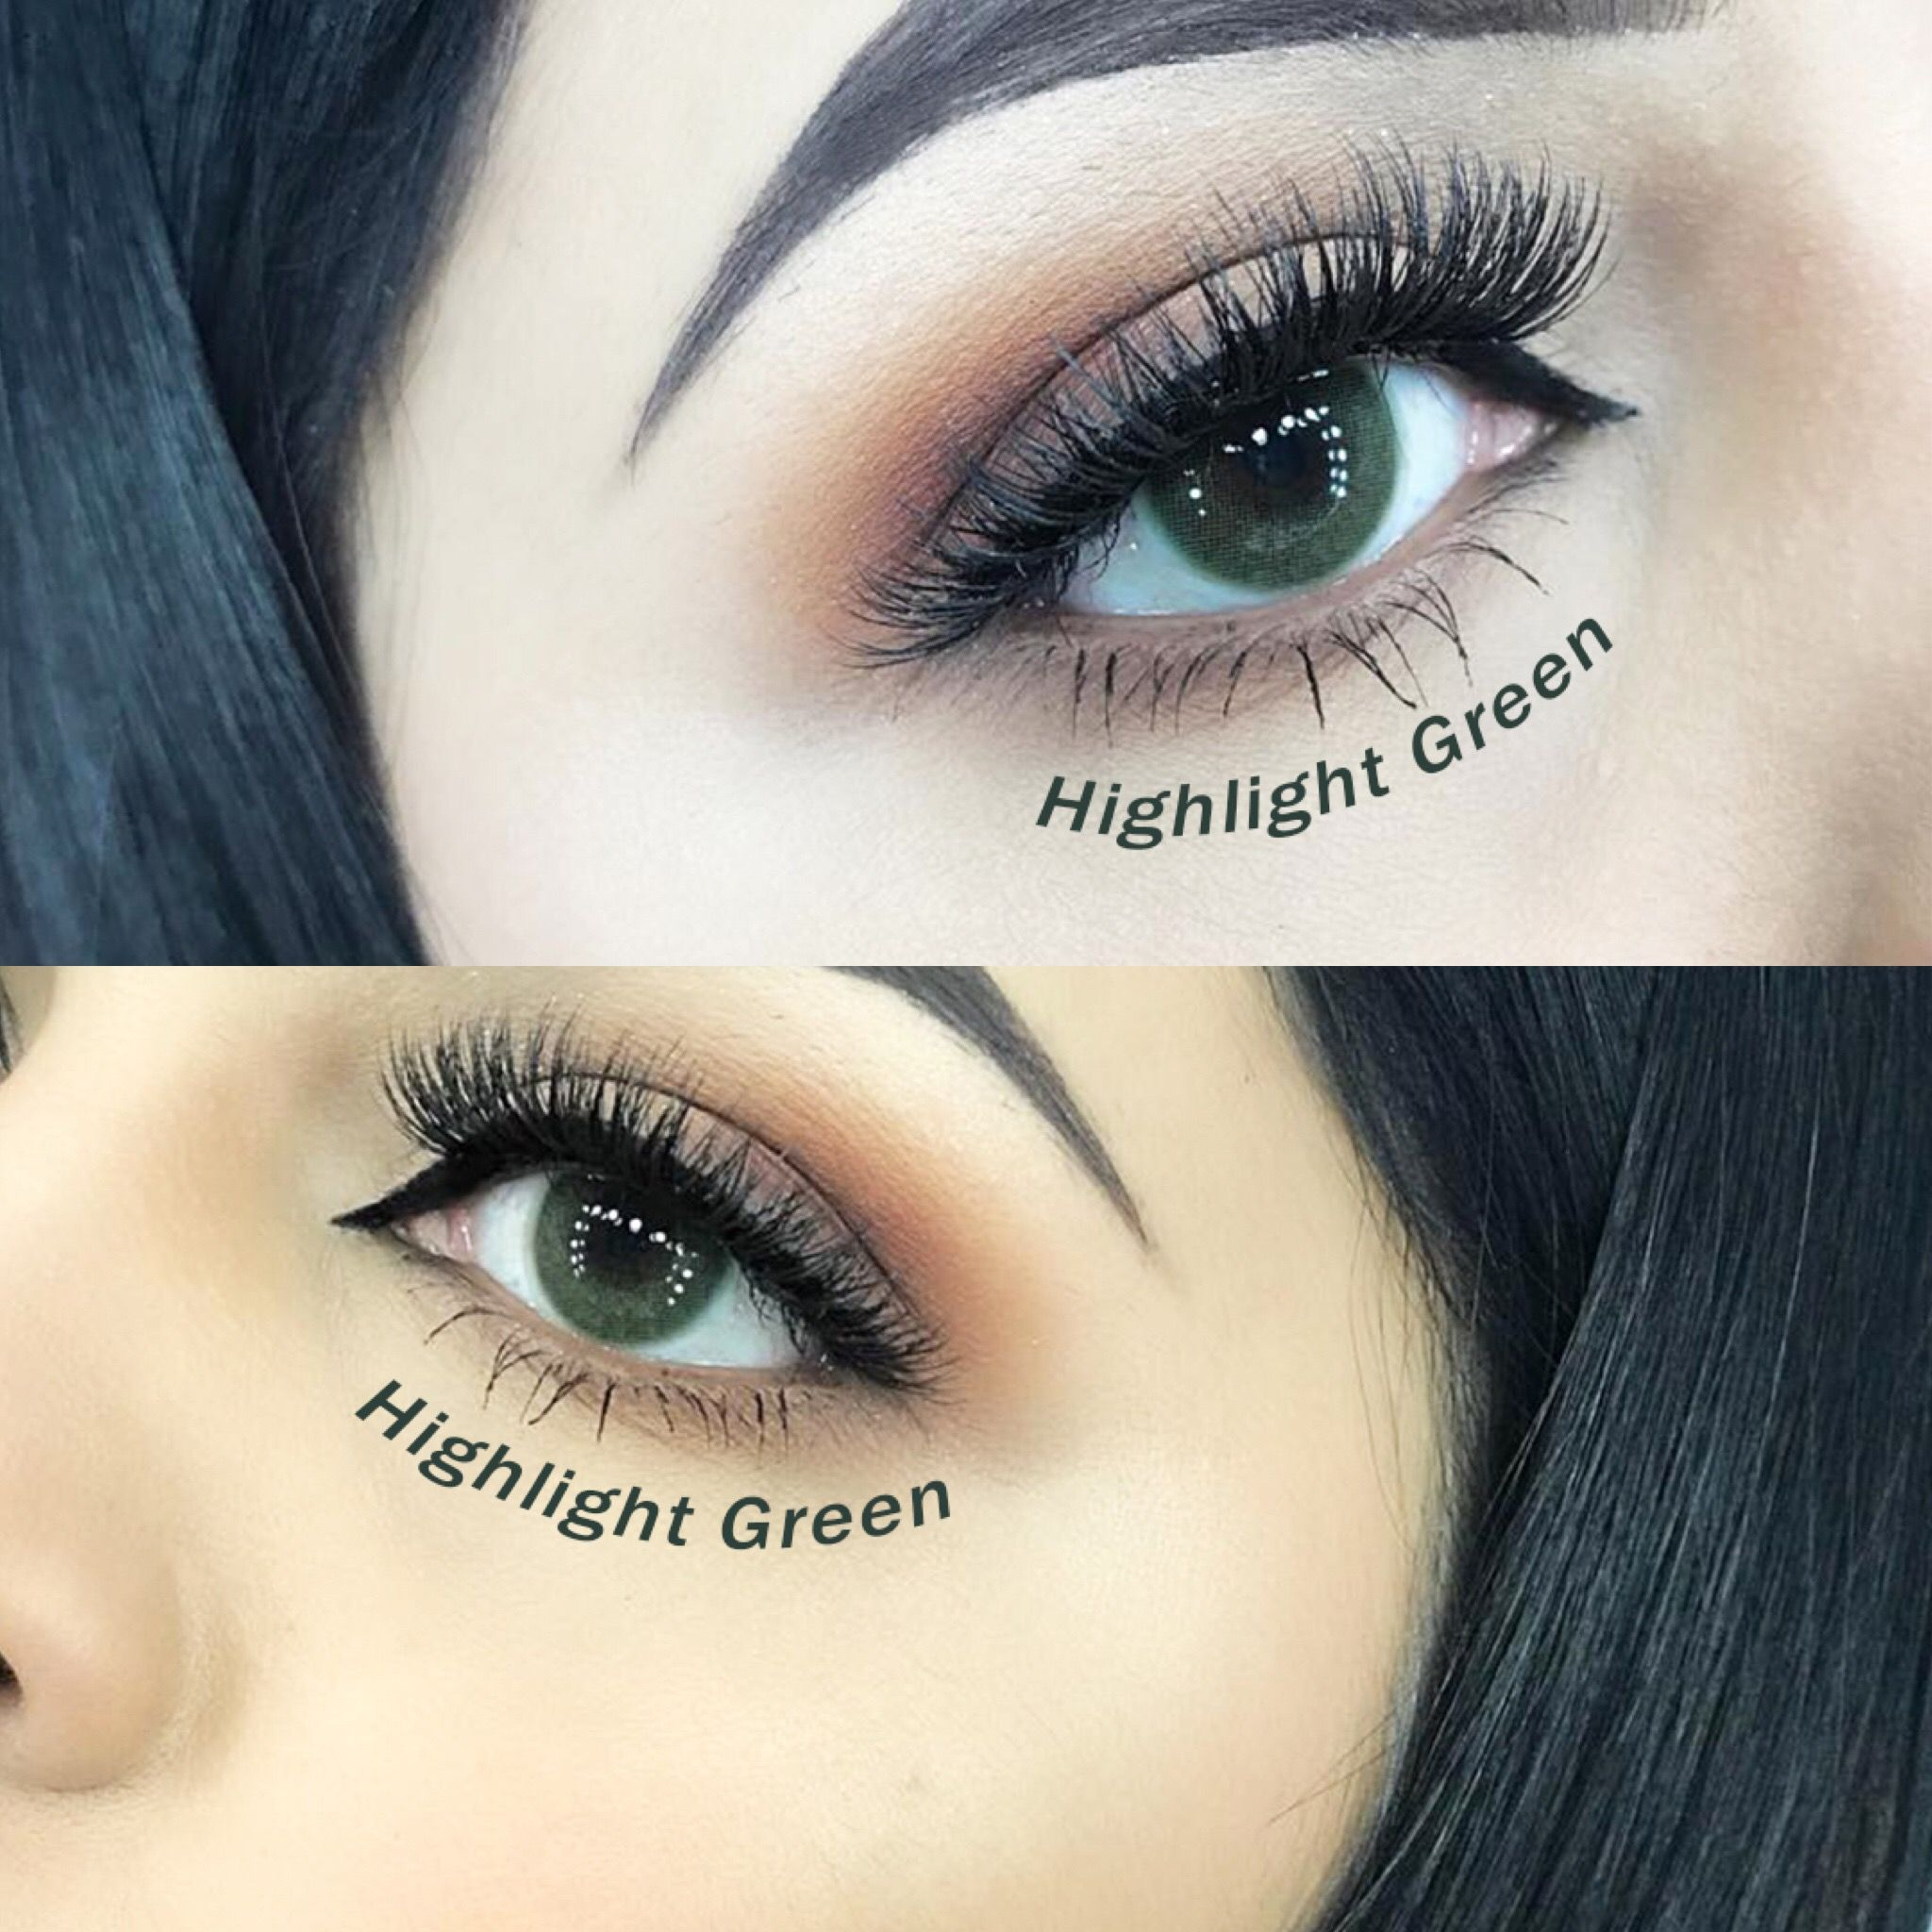 Colored Contact Lenses Natural Contacts Highlight Contacts Vceebeauty Contact Lenses Colored Contact Lenses For Brown Eyes Brown Contact Lenses